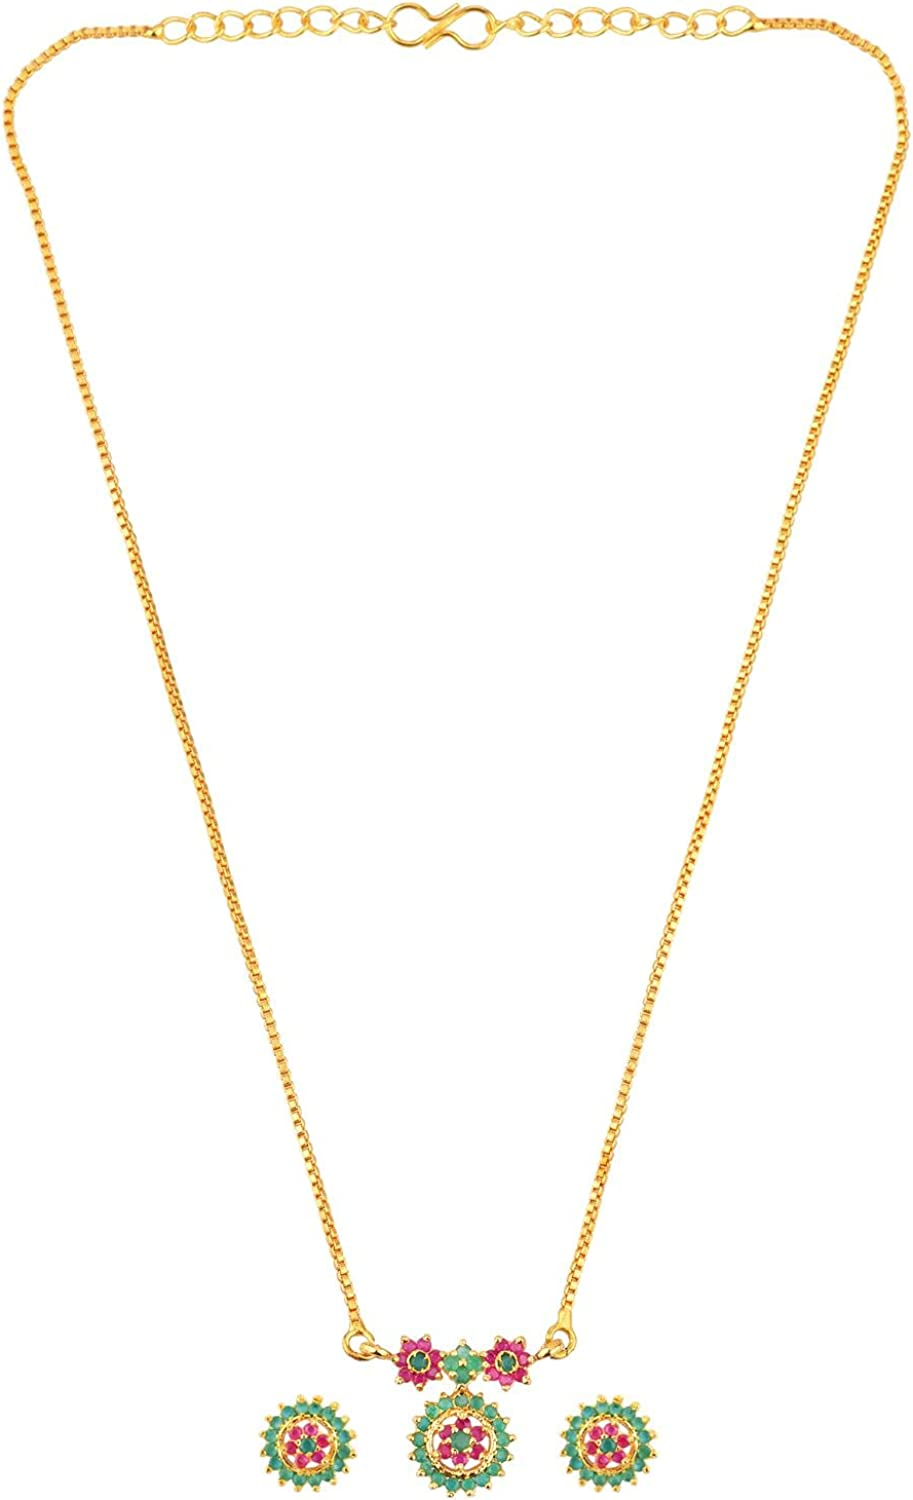 Efulgenz Indian Jewelry Cubic Zirconia CZ Round Pendant Chain Necklace Earrings Jewelry Set Gift for Women Girls